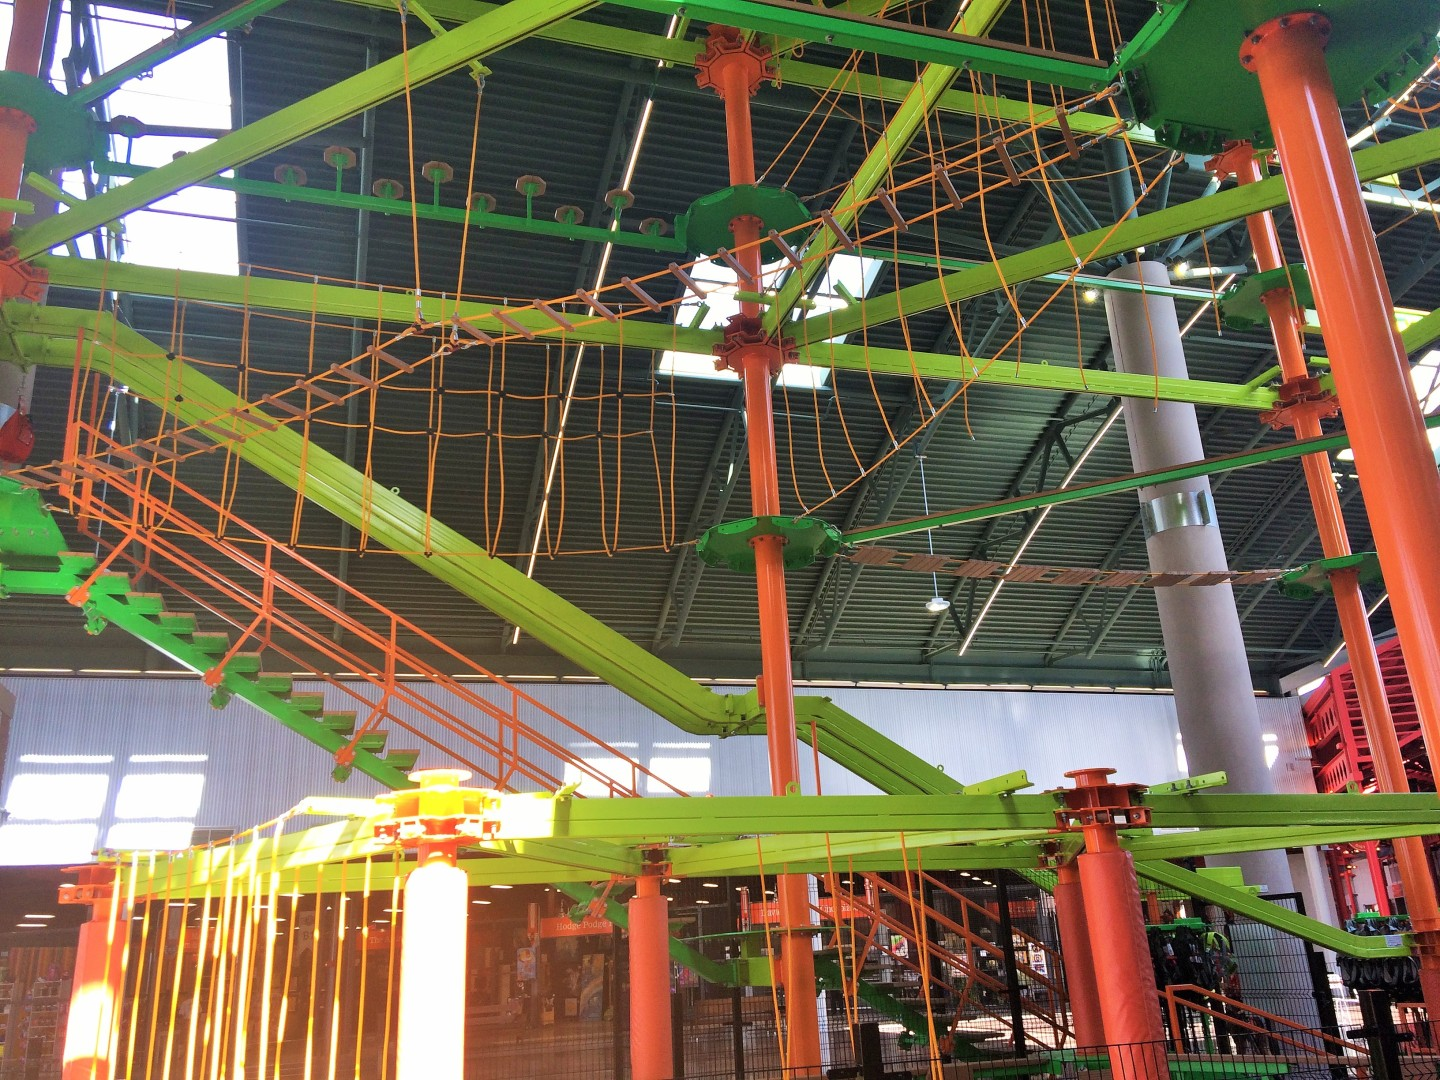 This ropes course will appeal to kids.